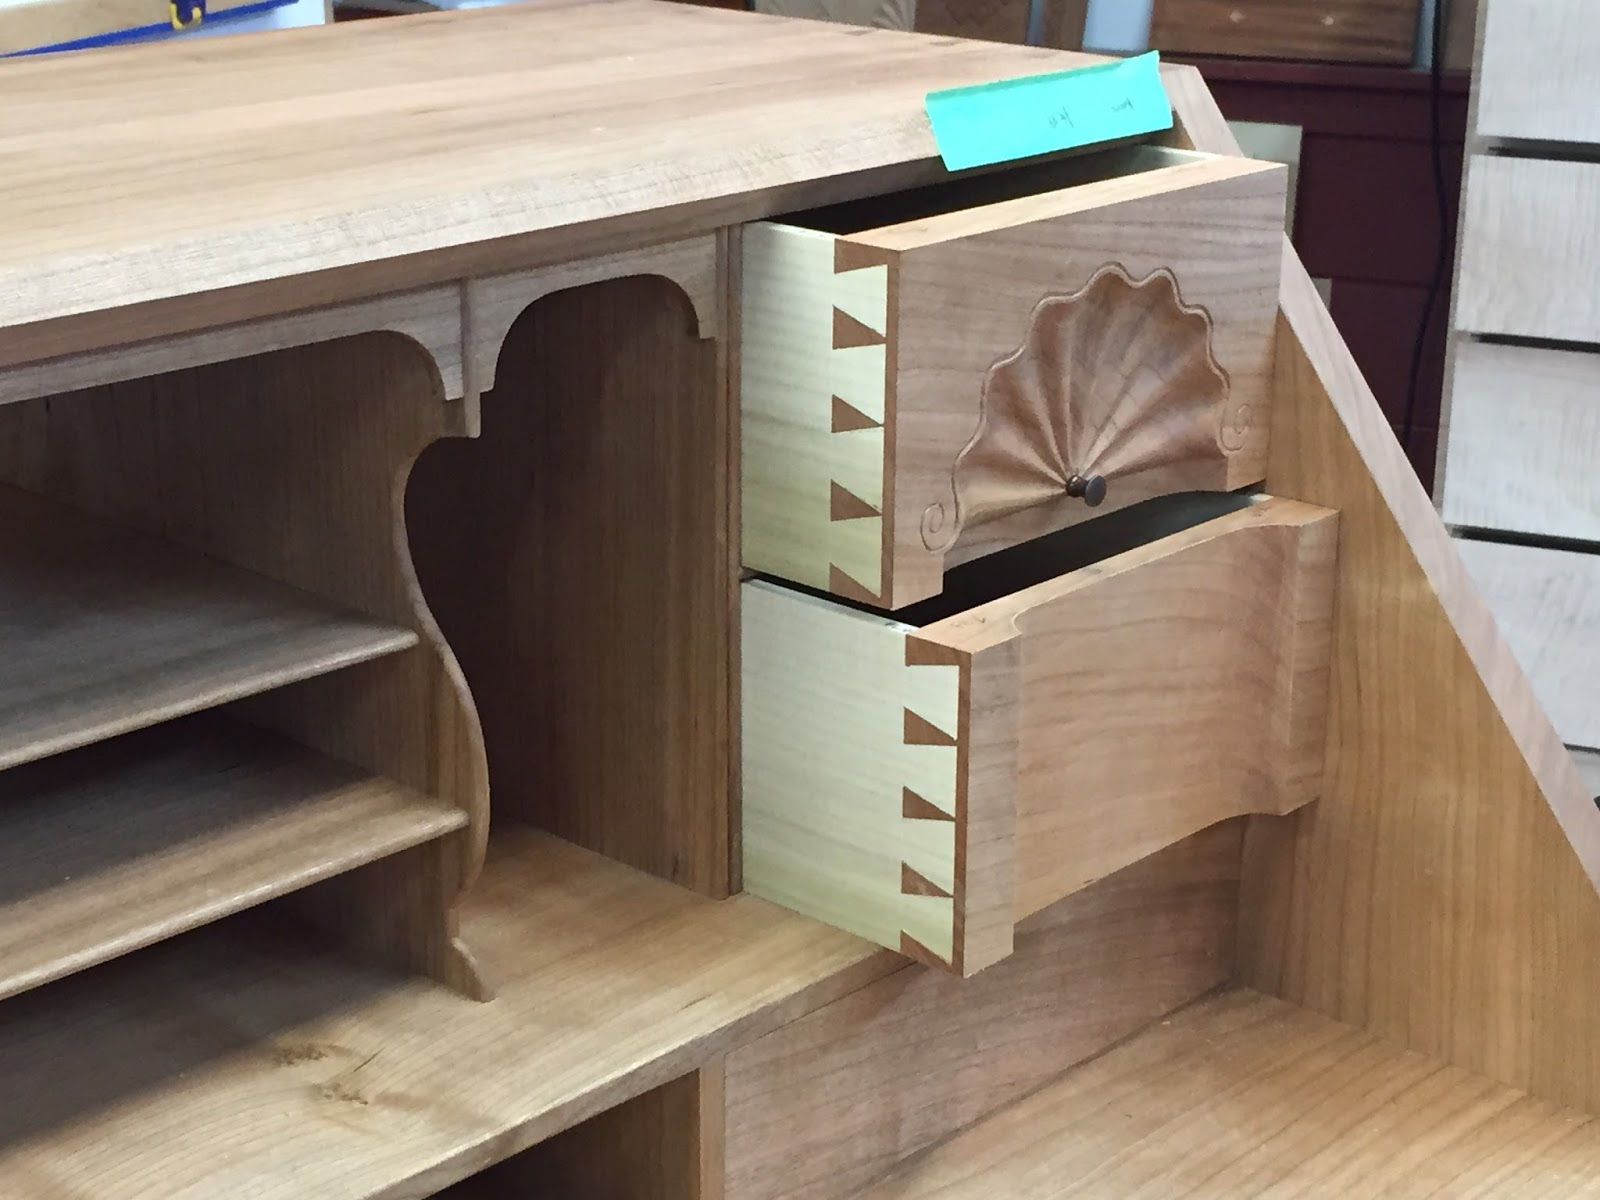 Carved Shell on dovetailed drawers